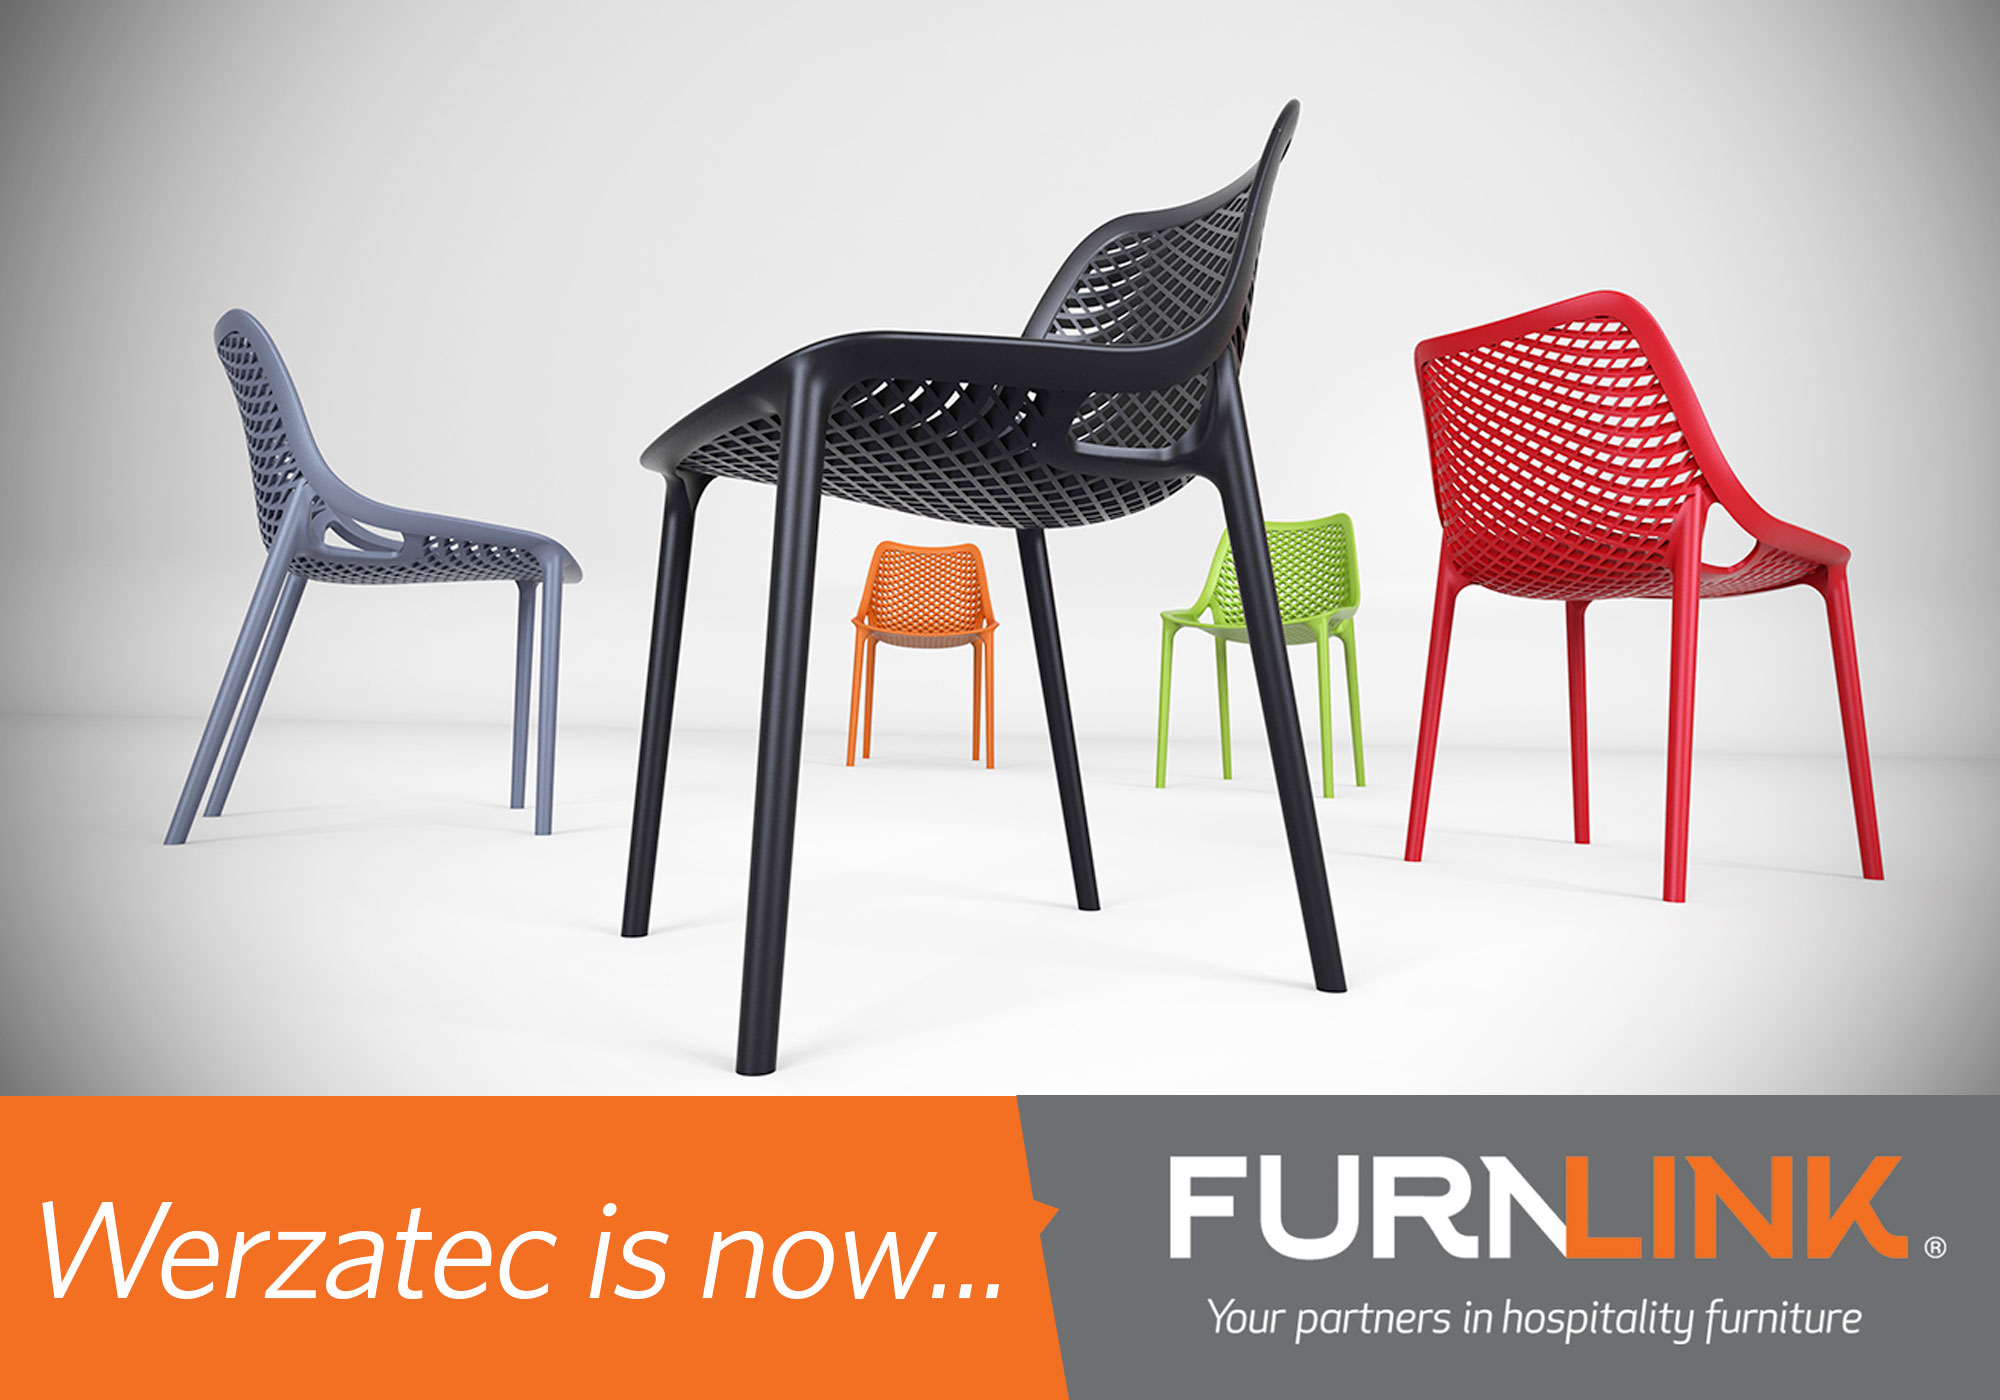 Werzatec is now Furnlink – Your Partners in Hospitality Furniture